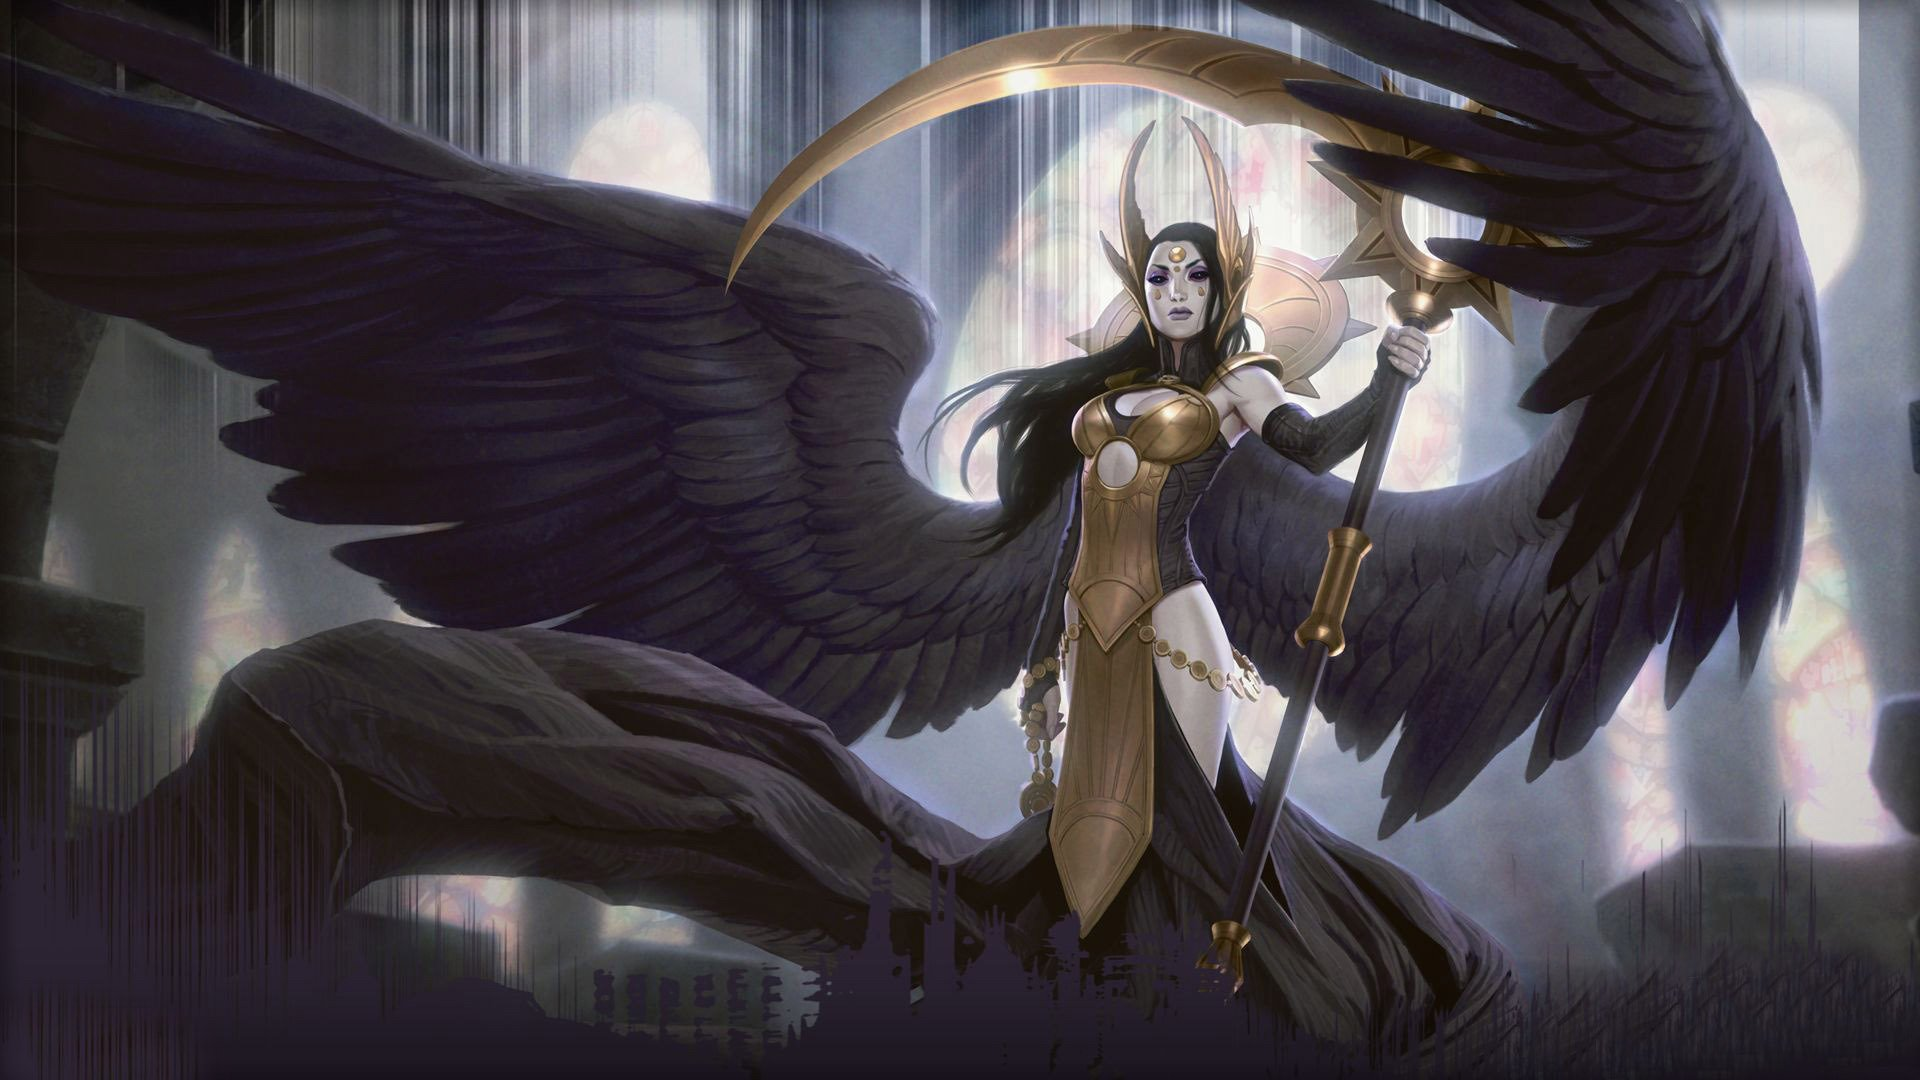 Magic The Gathering Hd Wallpapers Backgrounds Wallpaper 1920x1080